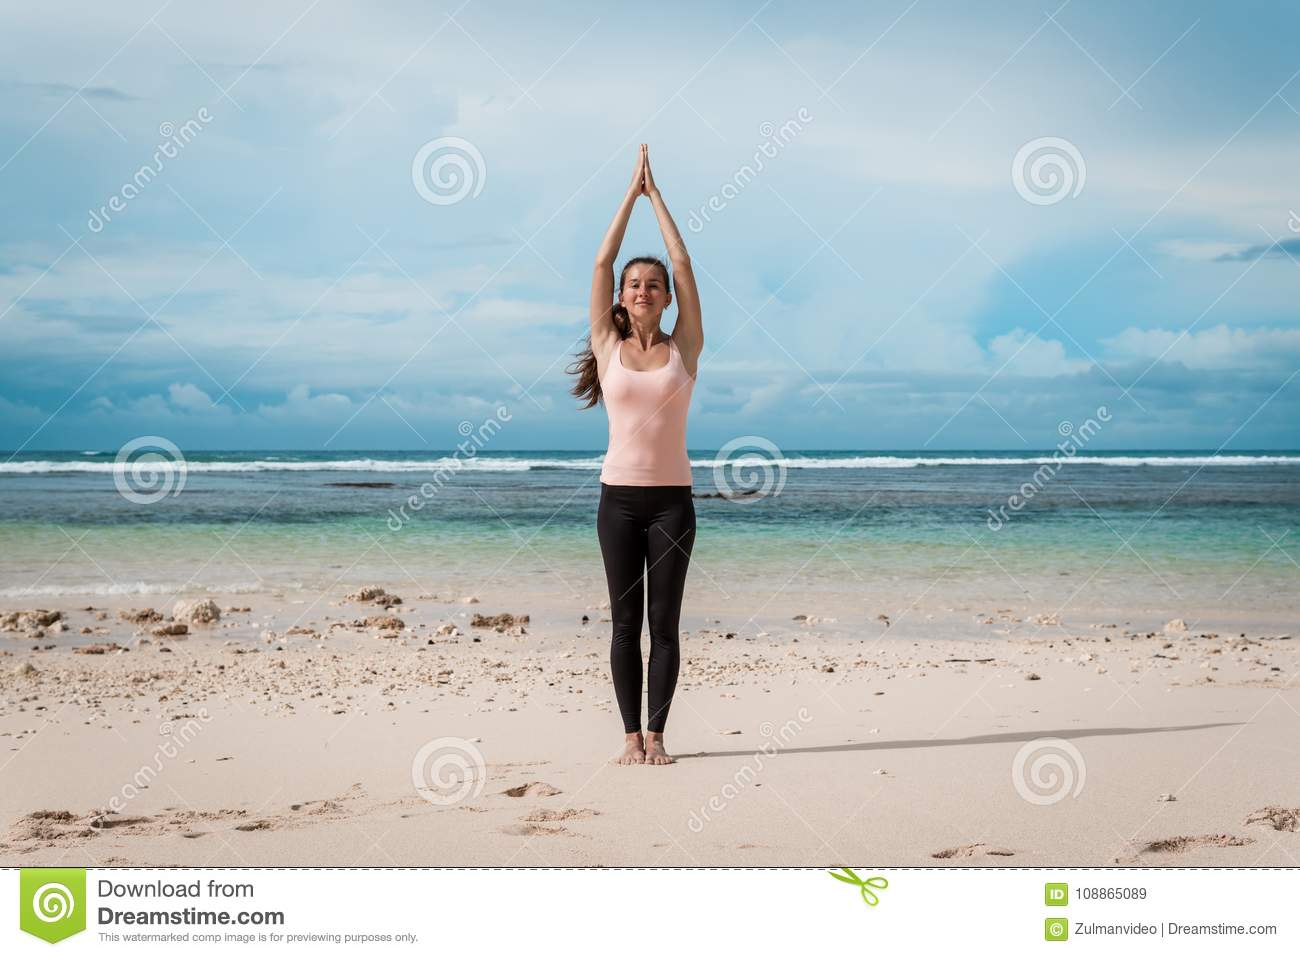 Woman Standing A Namaste Yoga Pose On The Beach Next To The Ocean Or